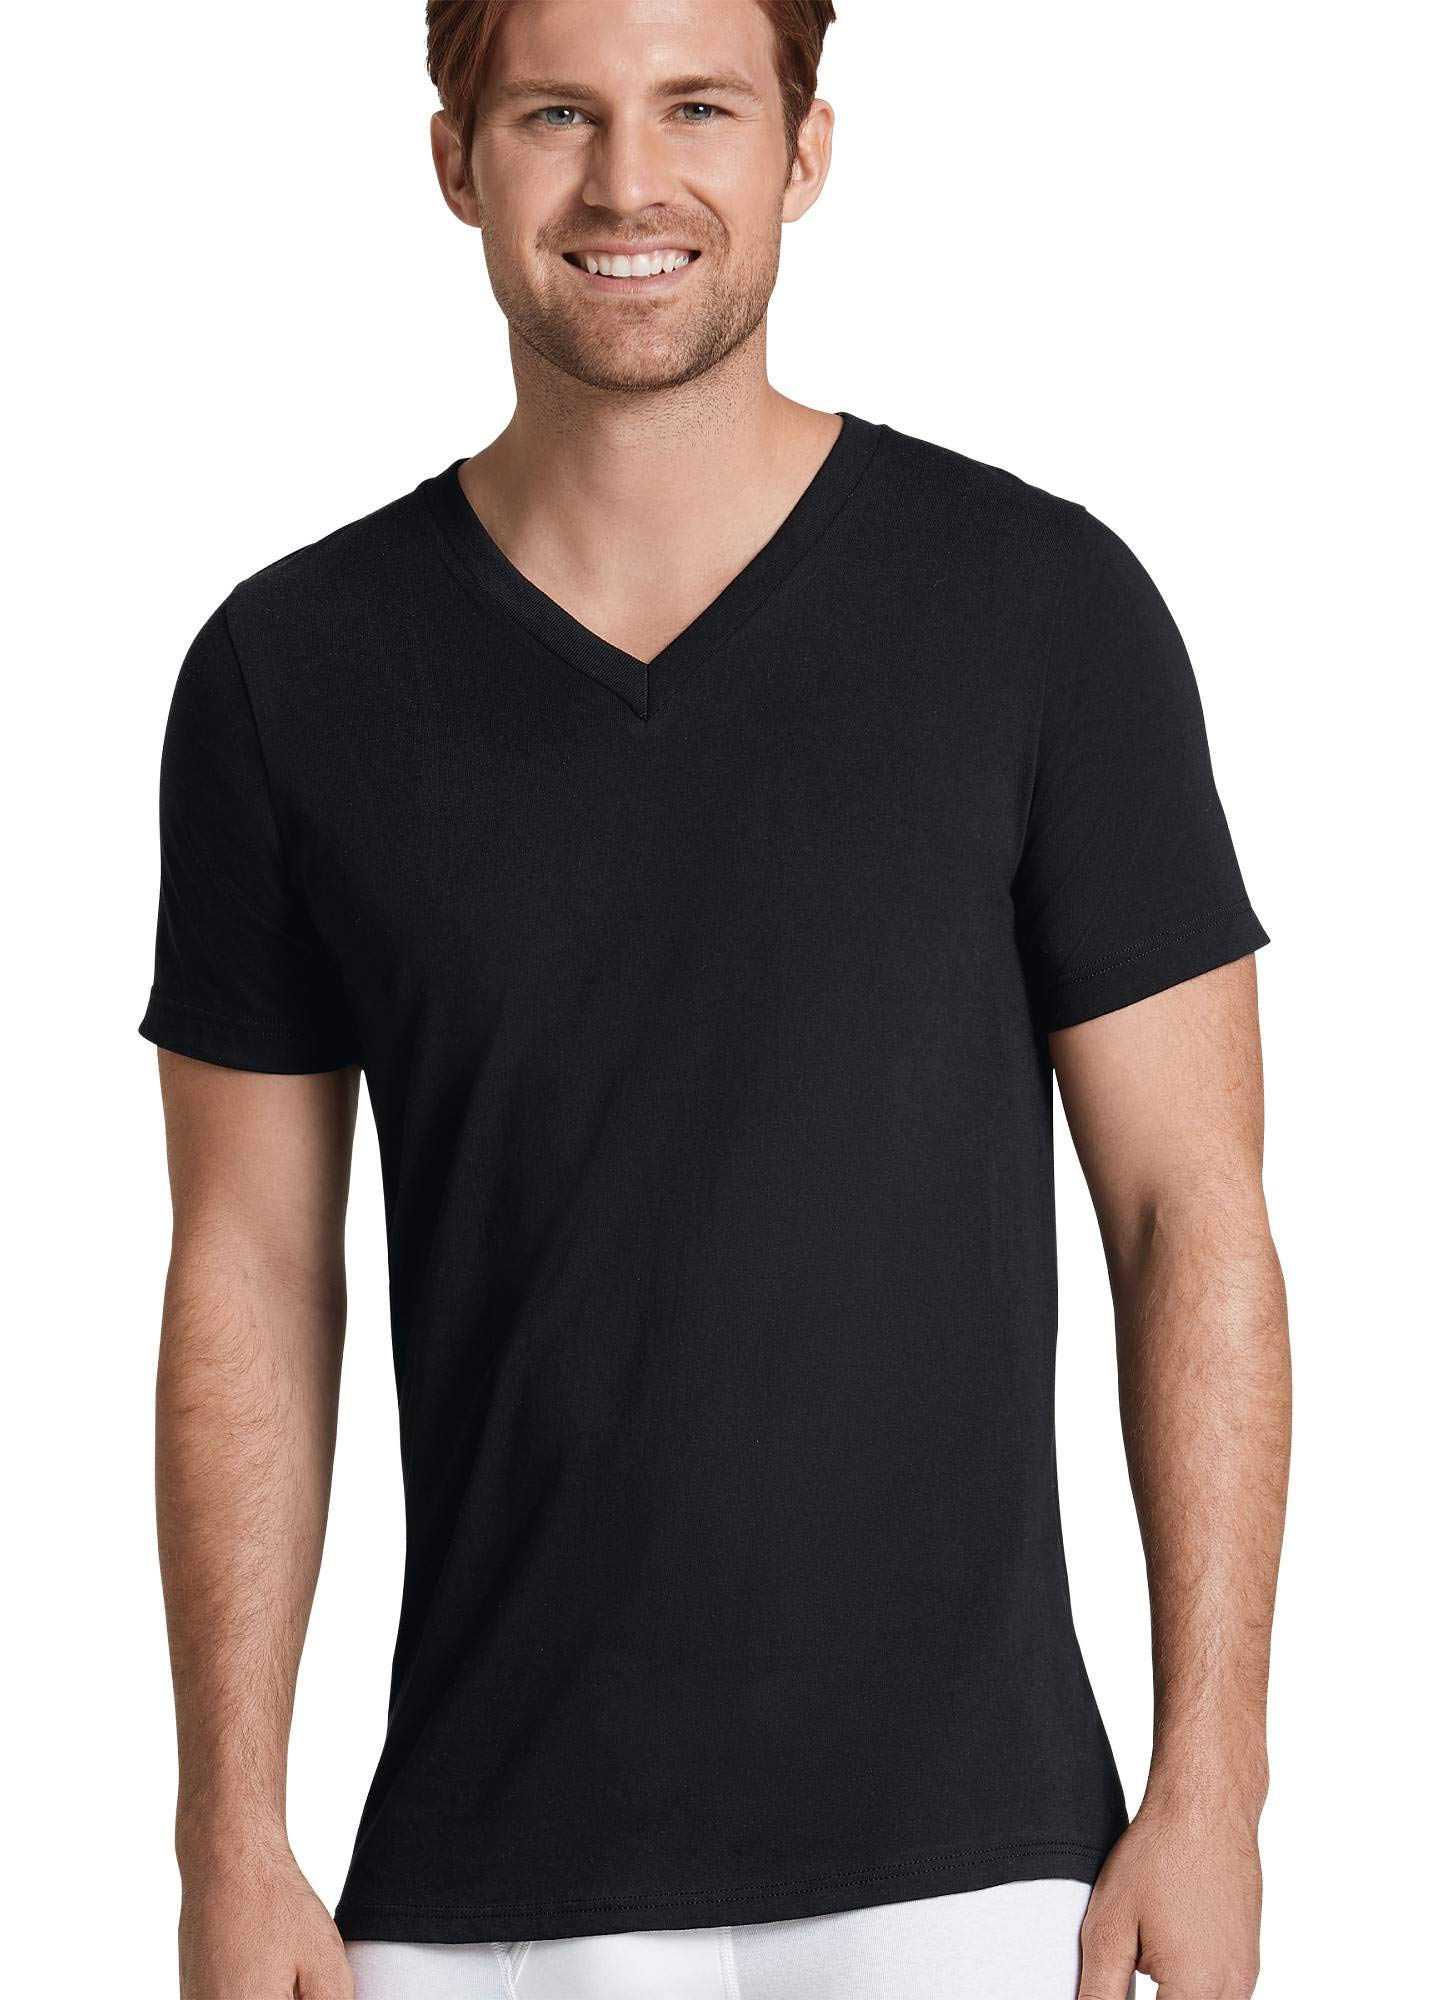 Jockey Men's T-Shirts Classic V-Neck T-Shirt - 6 Pack, Black, M by Jockey